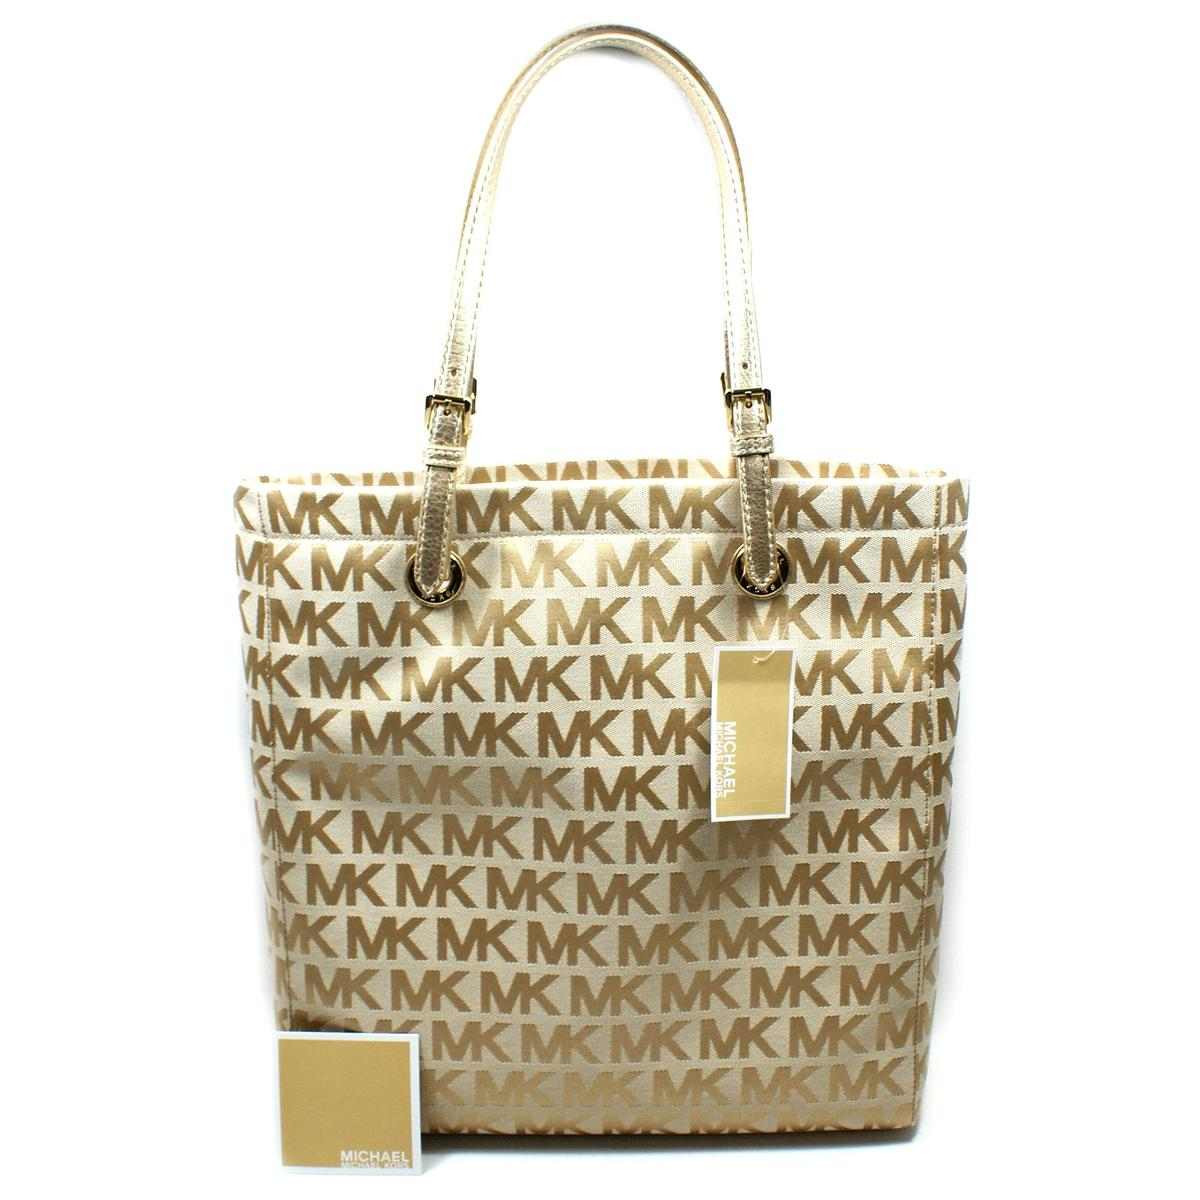 Michael kors bags in dubai - Found